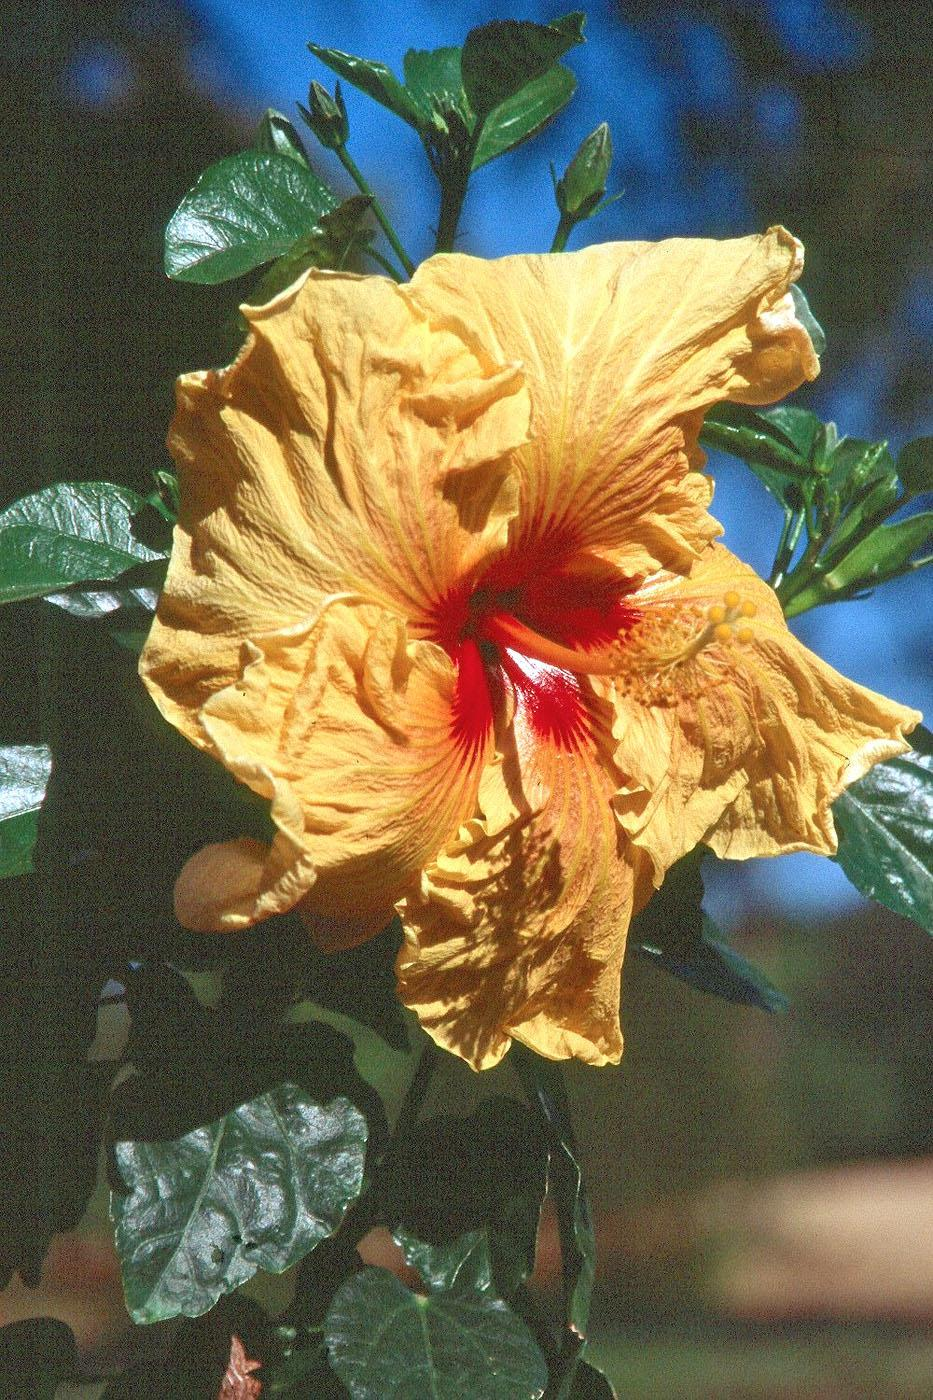 With spectacular-colored flowers and contrasting dark green foliage, the new Cajun series hibiscus wowed visitors to the Jackson Garden and Patio Show. There are now more than 20 selections, such as the Fais Do Do pictured, in the Cajun series.